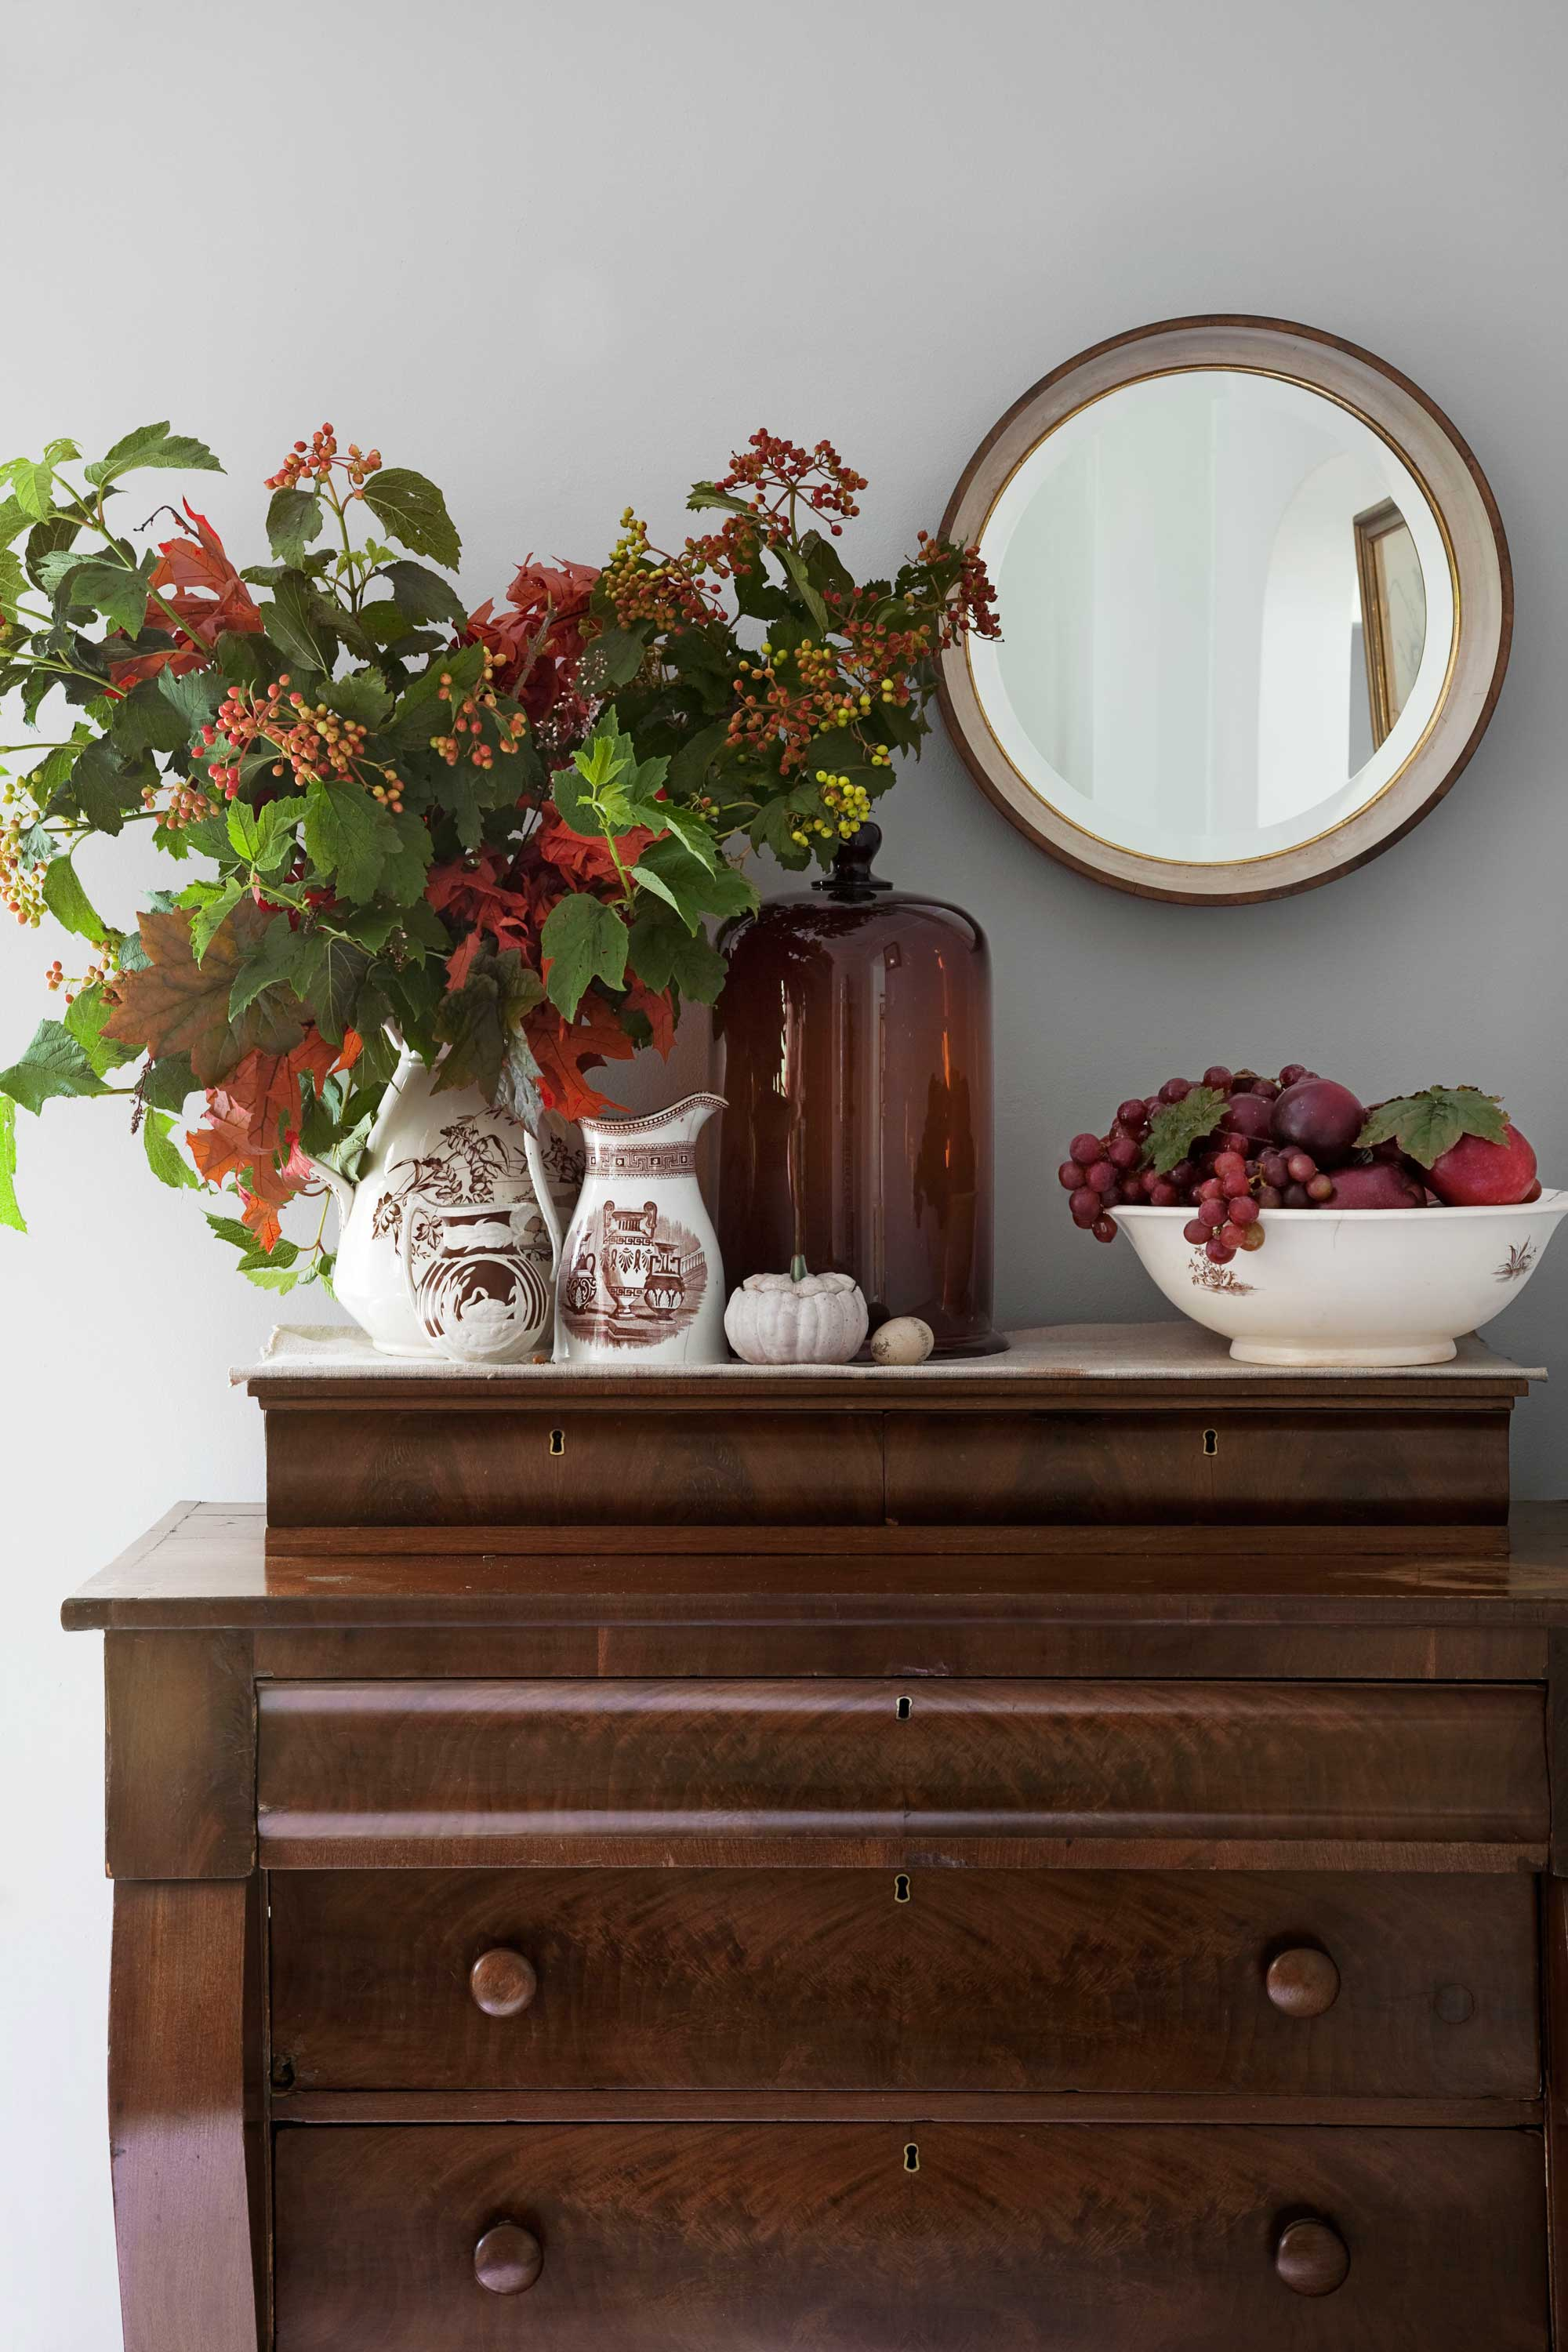 40 easy fall decorating ideas   autumn decor tips to try